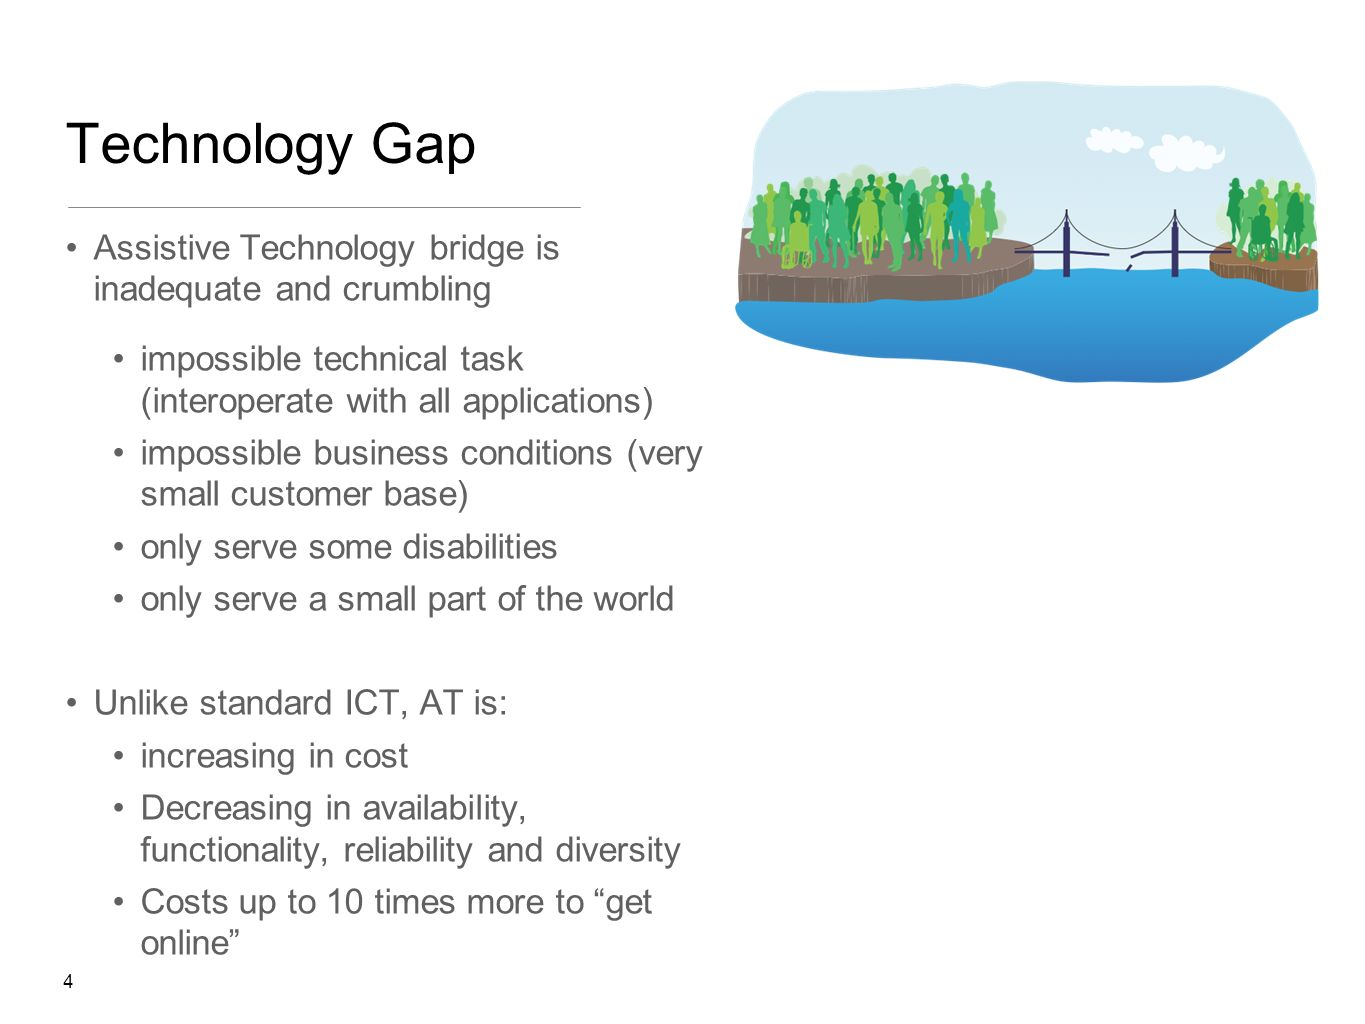 4 Technology Gap Assistive Technology bridge is inadequate and crumbling impossible technical task (interoperate with all applications) impossible business conditions (very small customer base) only serve some disabilities only serve a small part of the world Unlike standard ICT, AT is: increasing in cost Decreasing in availability, functionality, reliability and diversity Costs up to 10 times more to get online